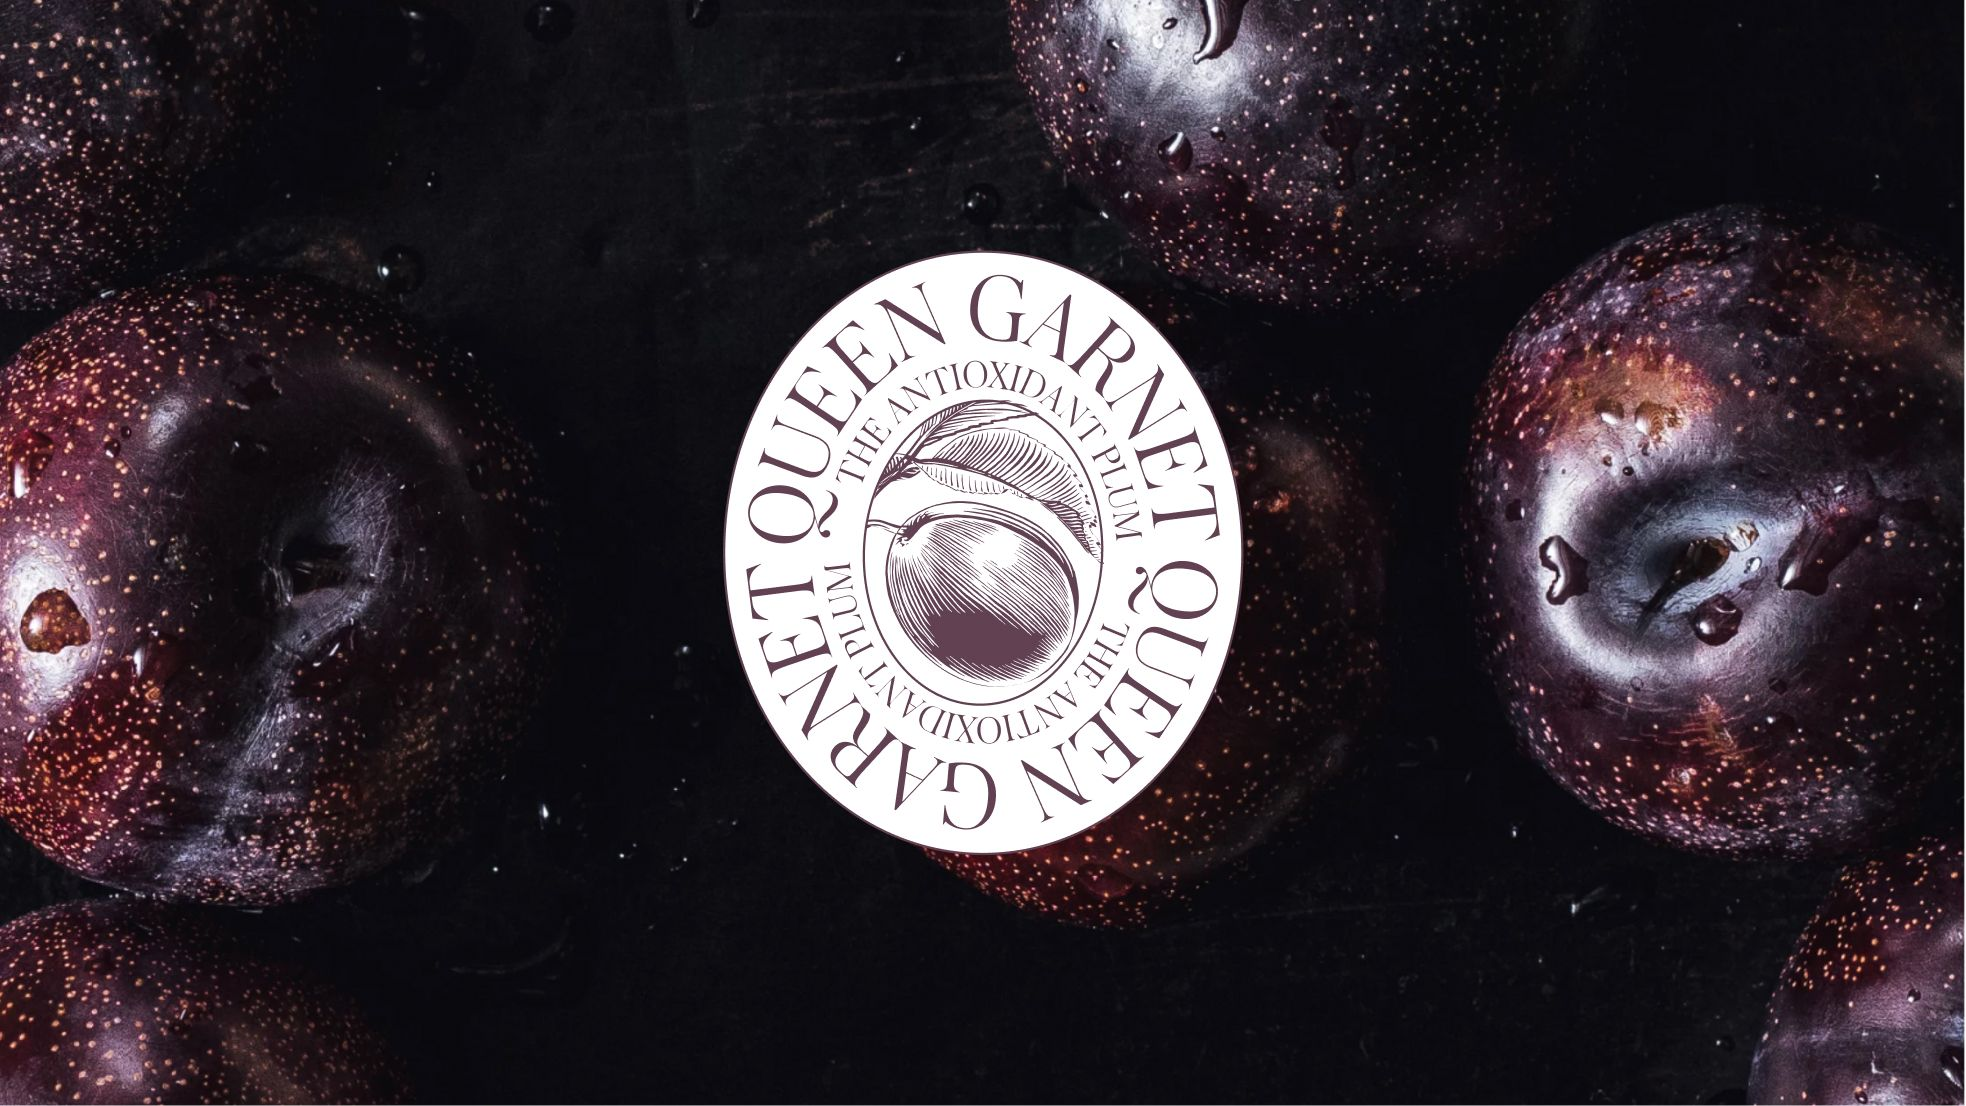 Closeup image of Queen Garnet logo and Queen Garnet plums